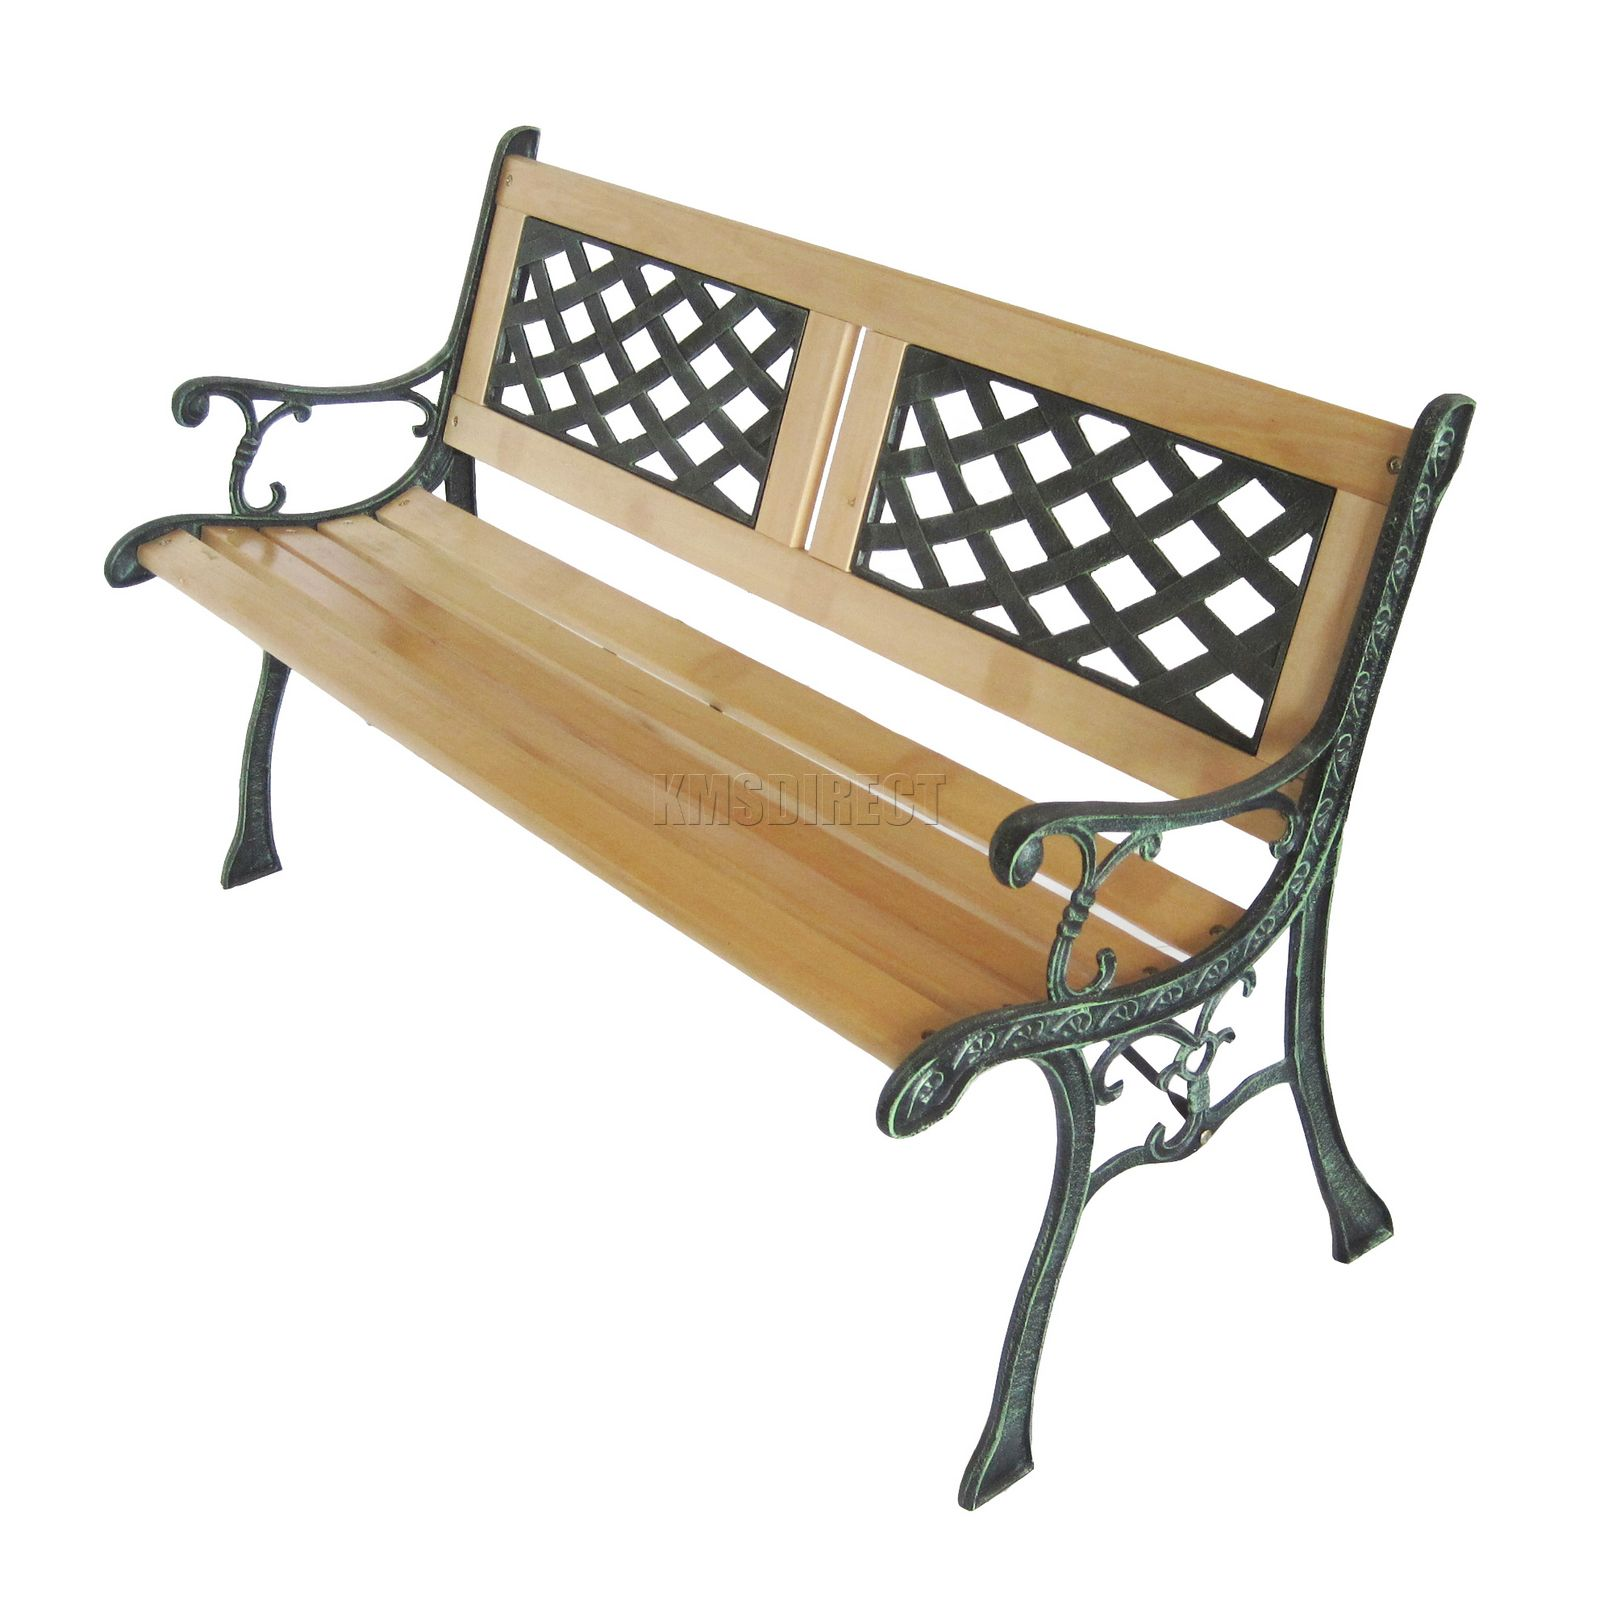 3 seater outdoor wooden garden bench lattice slat with cast iron legs park seat ebay Wrought iron outdoor bench